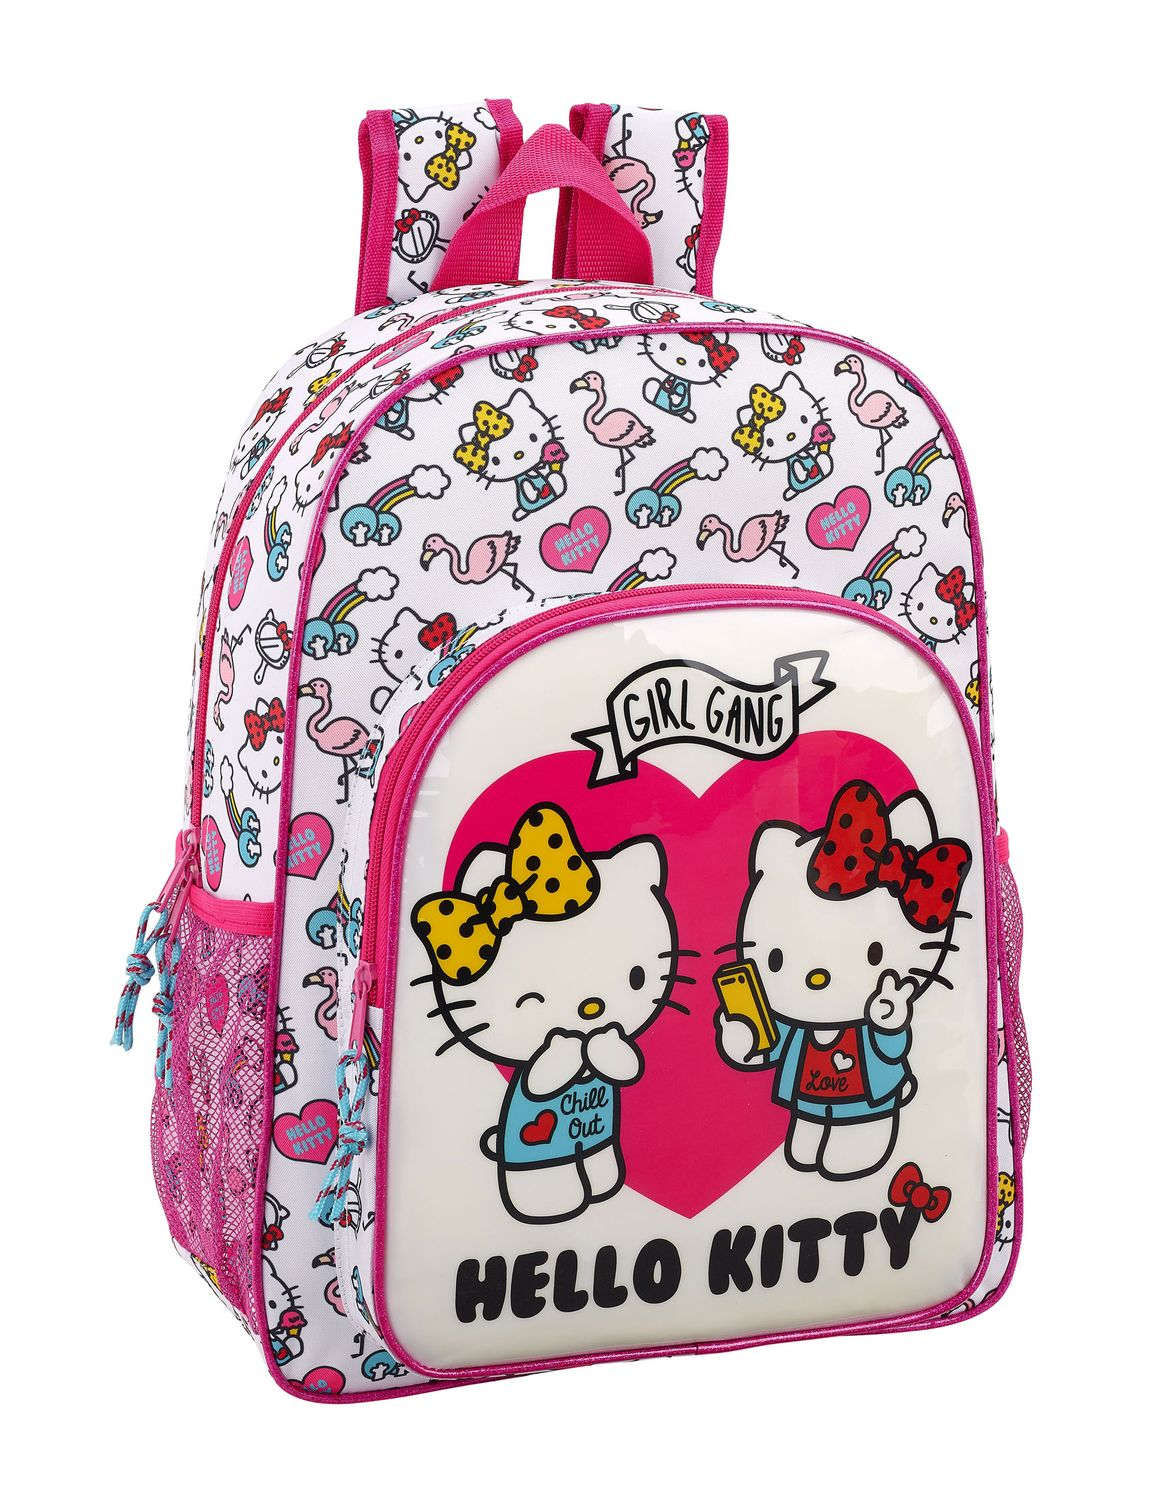 Hello Kitty Girl Gang Pink Backpack 42cm – image 1